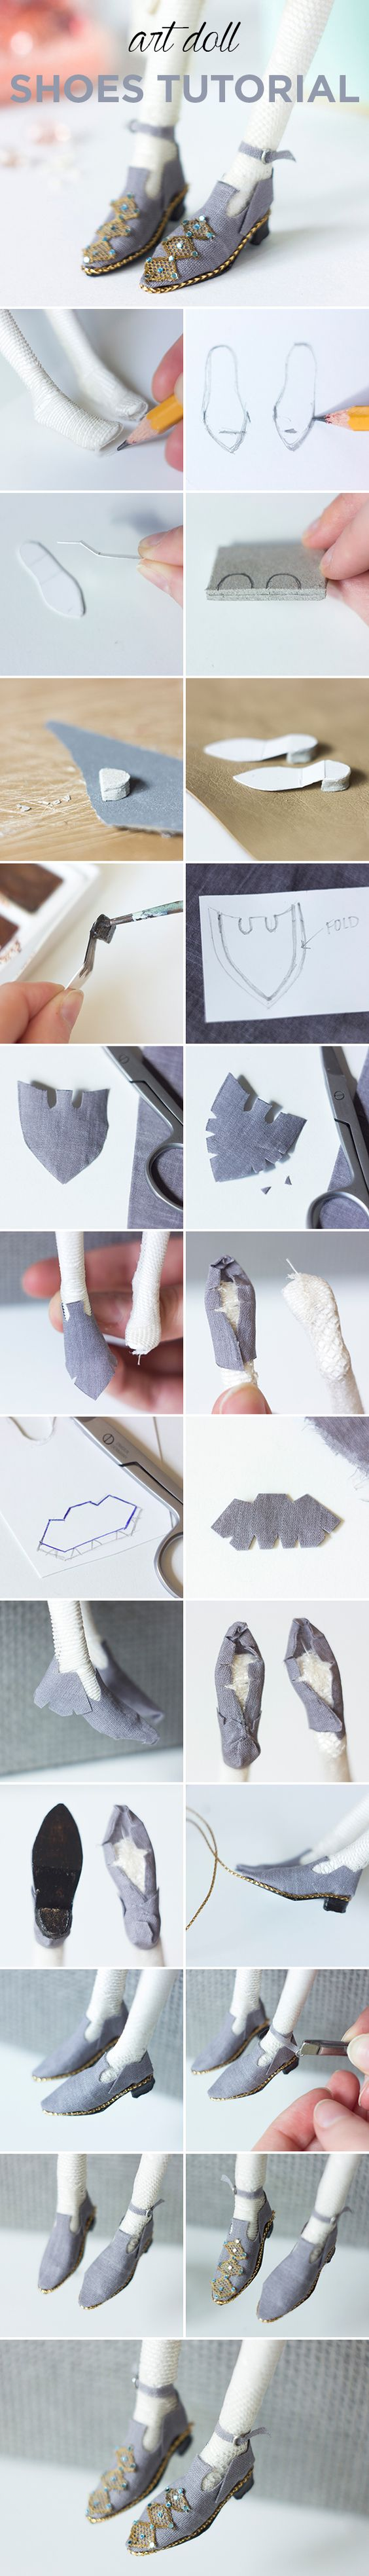 Miniature art doll shoes tutorial